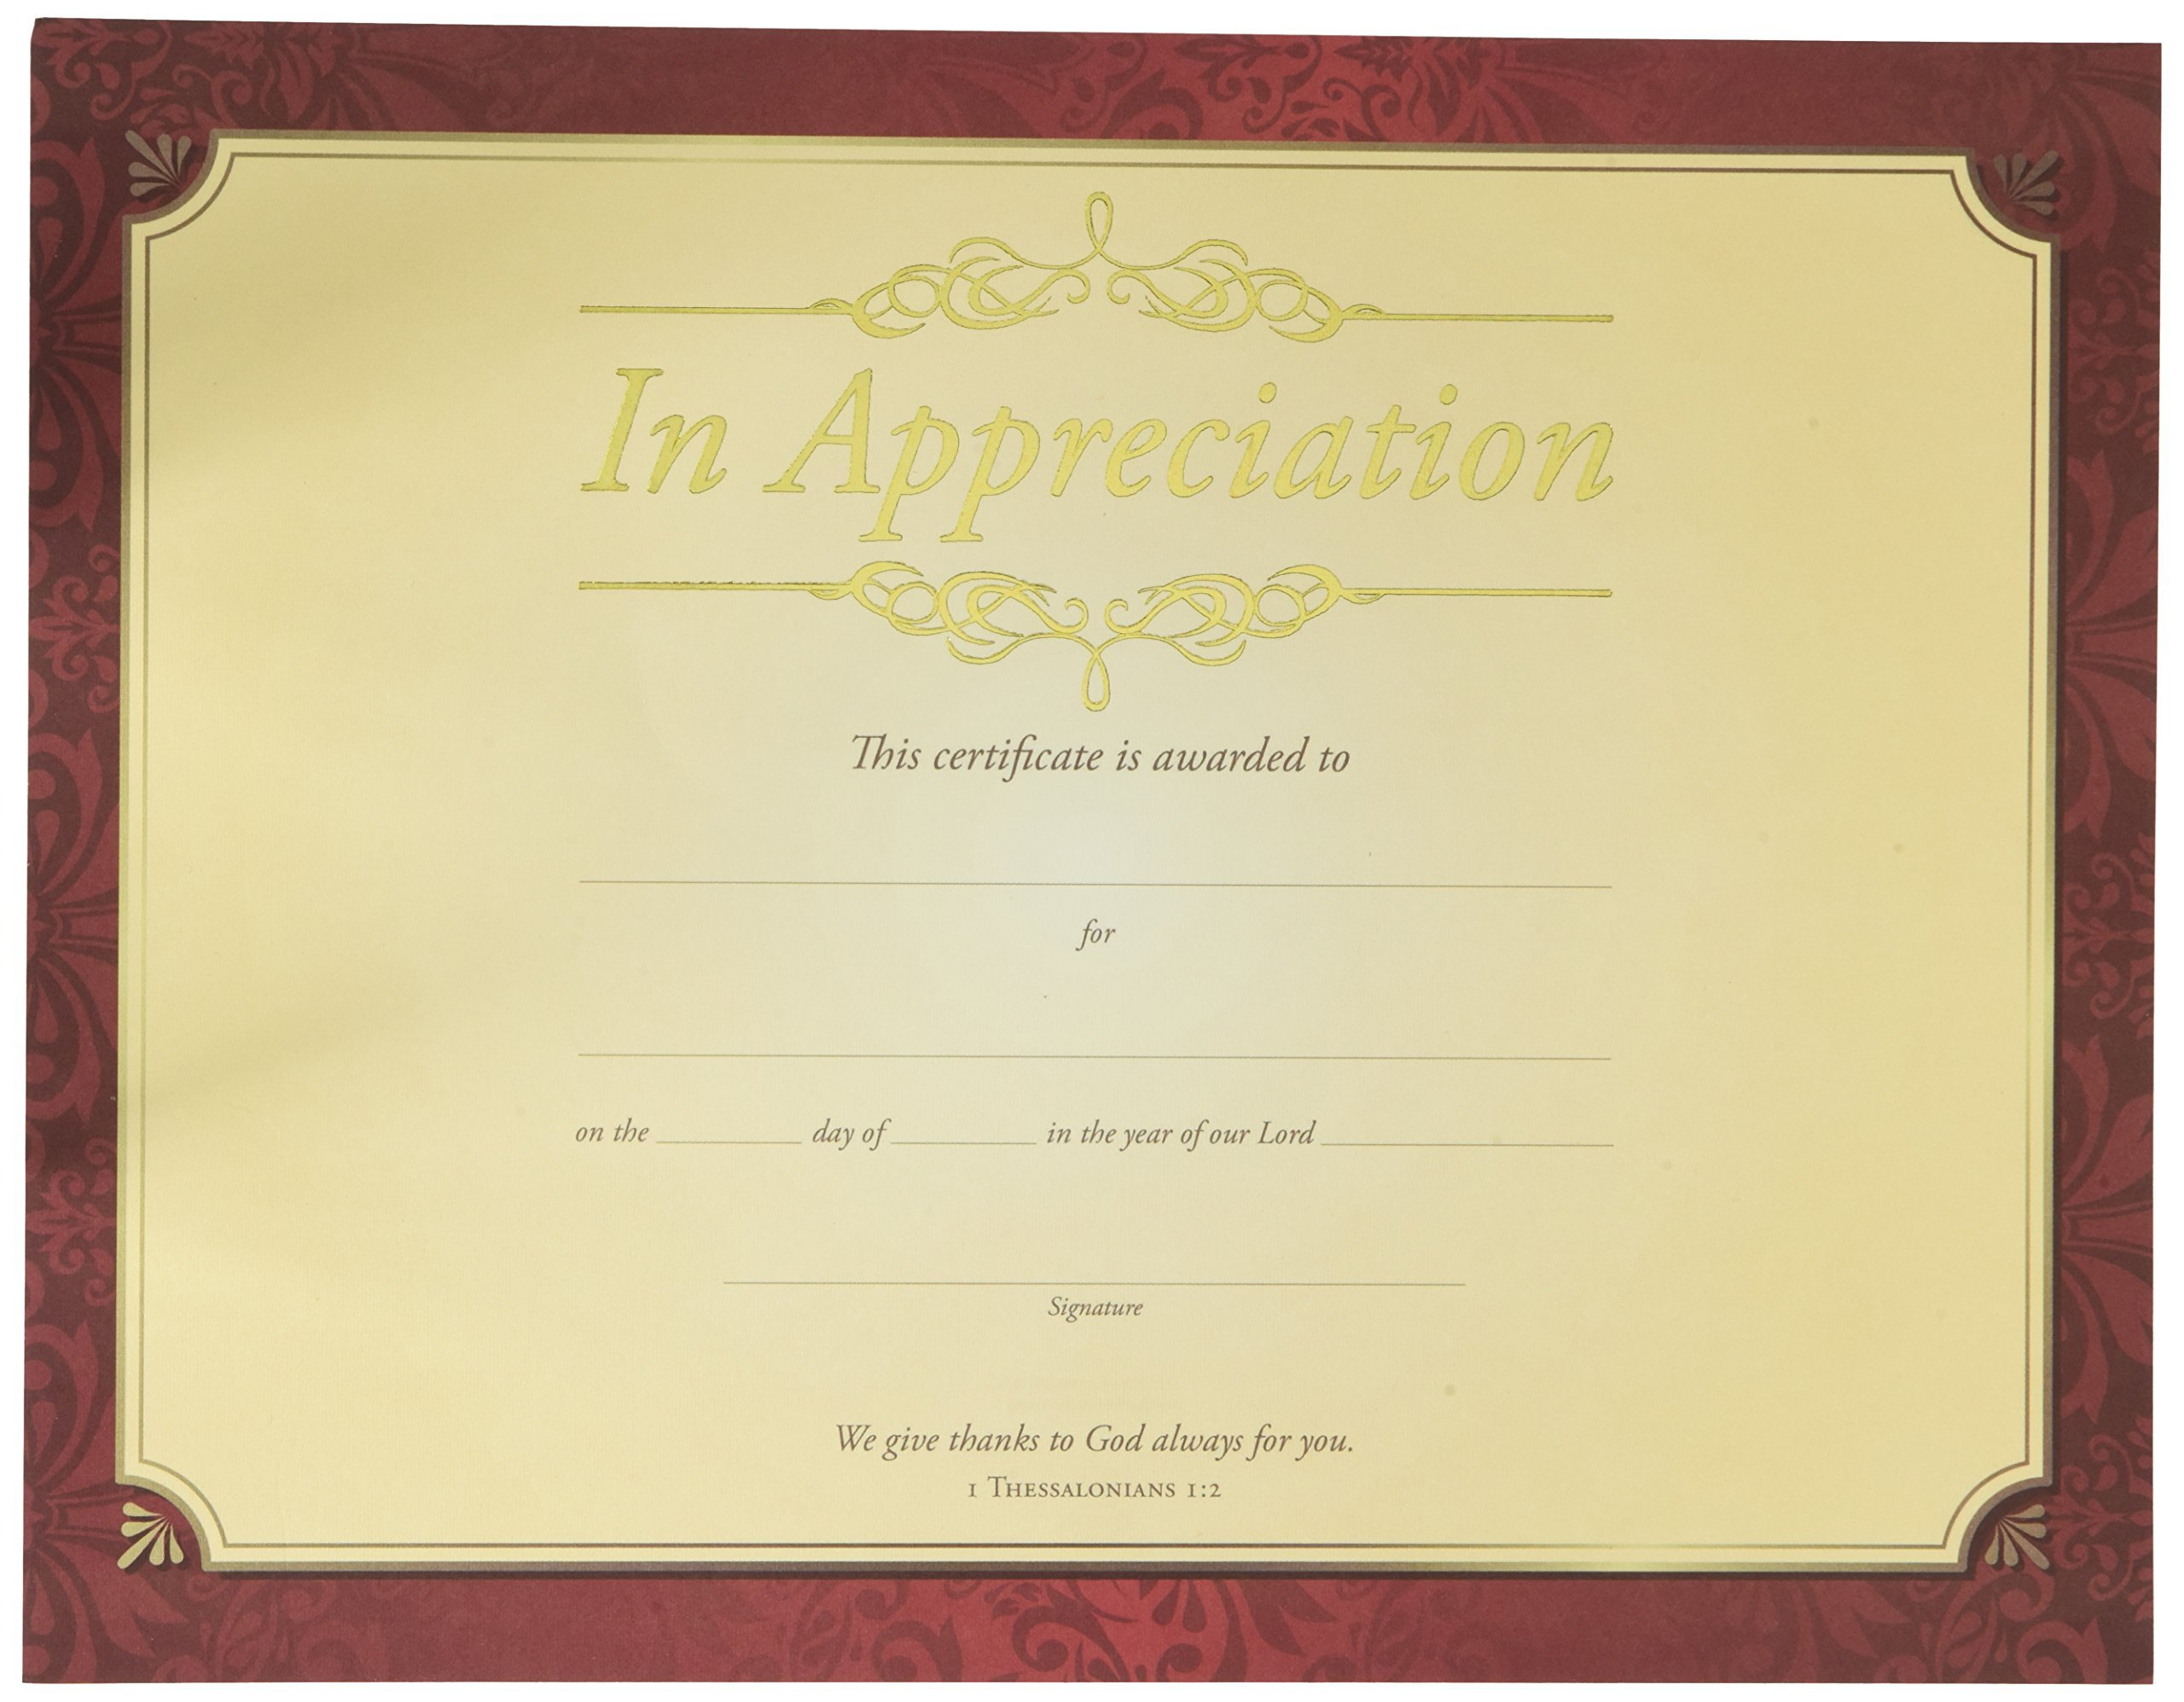 Certificate - Appreciation - In Apprecication - Gold Foil Embossed Premium Stock (Pack Of 6)